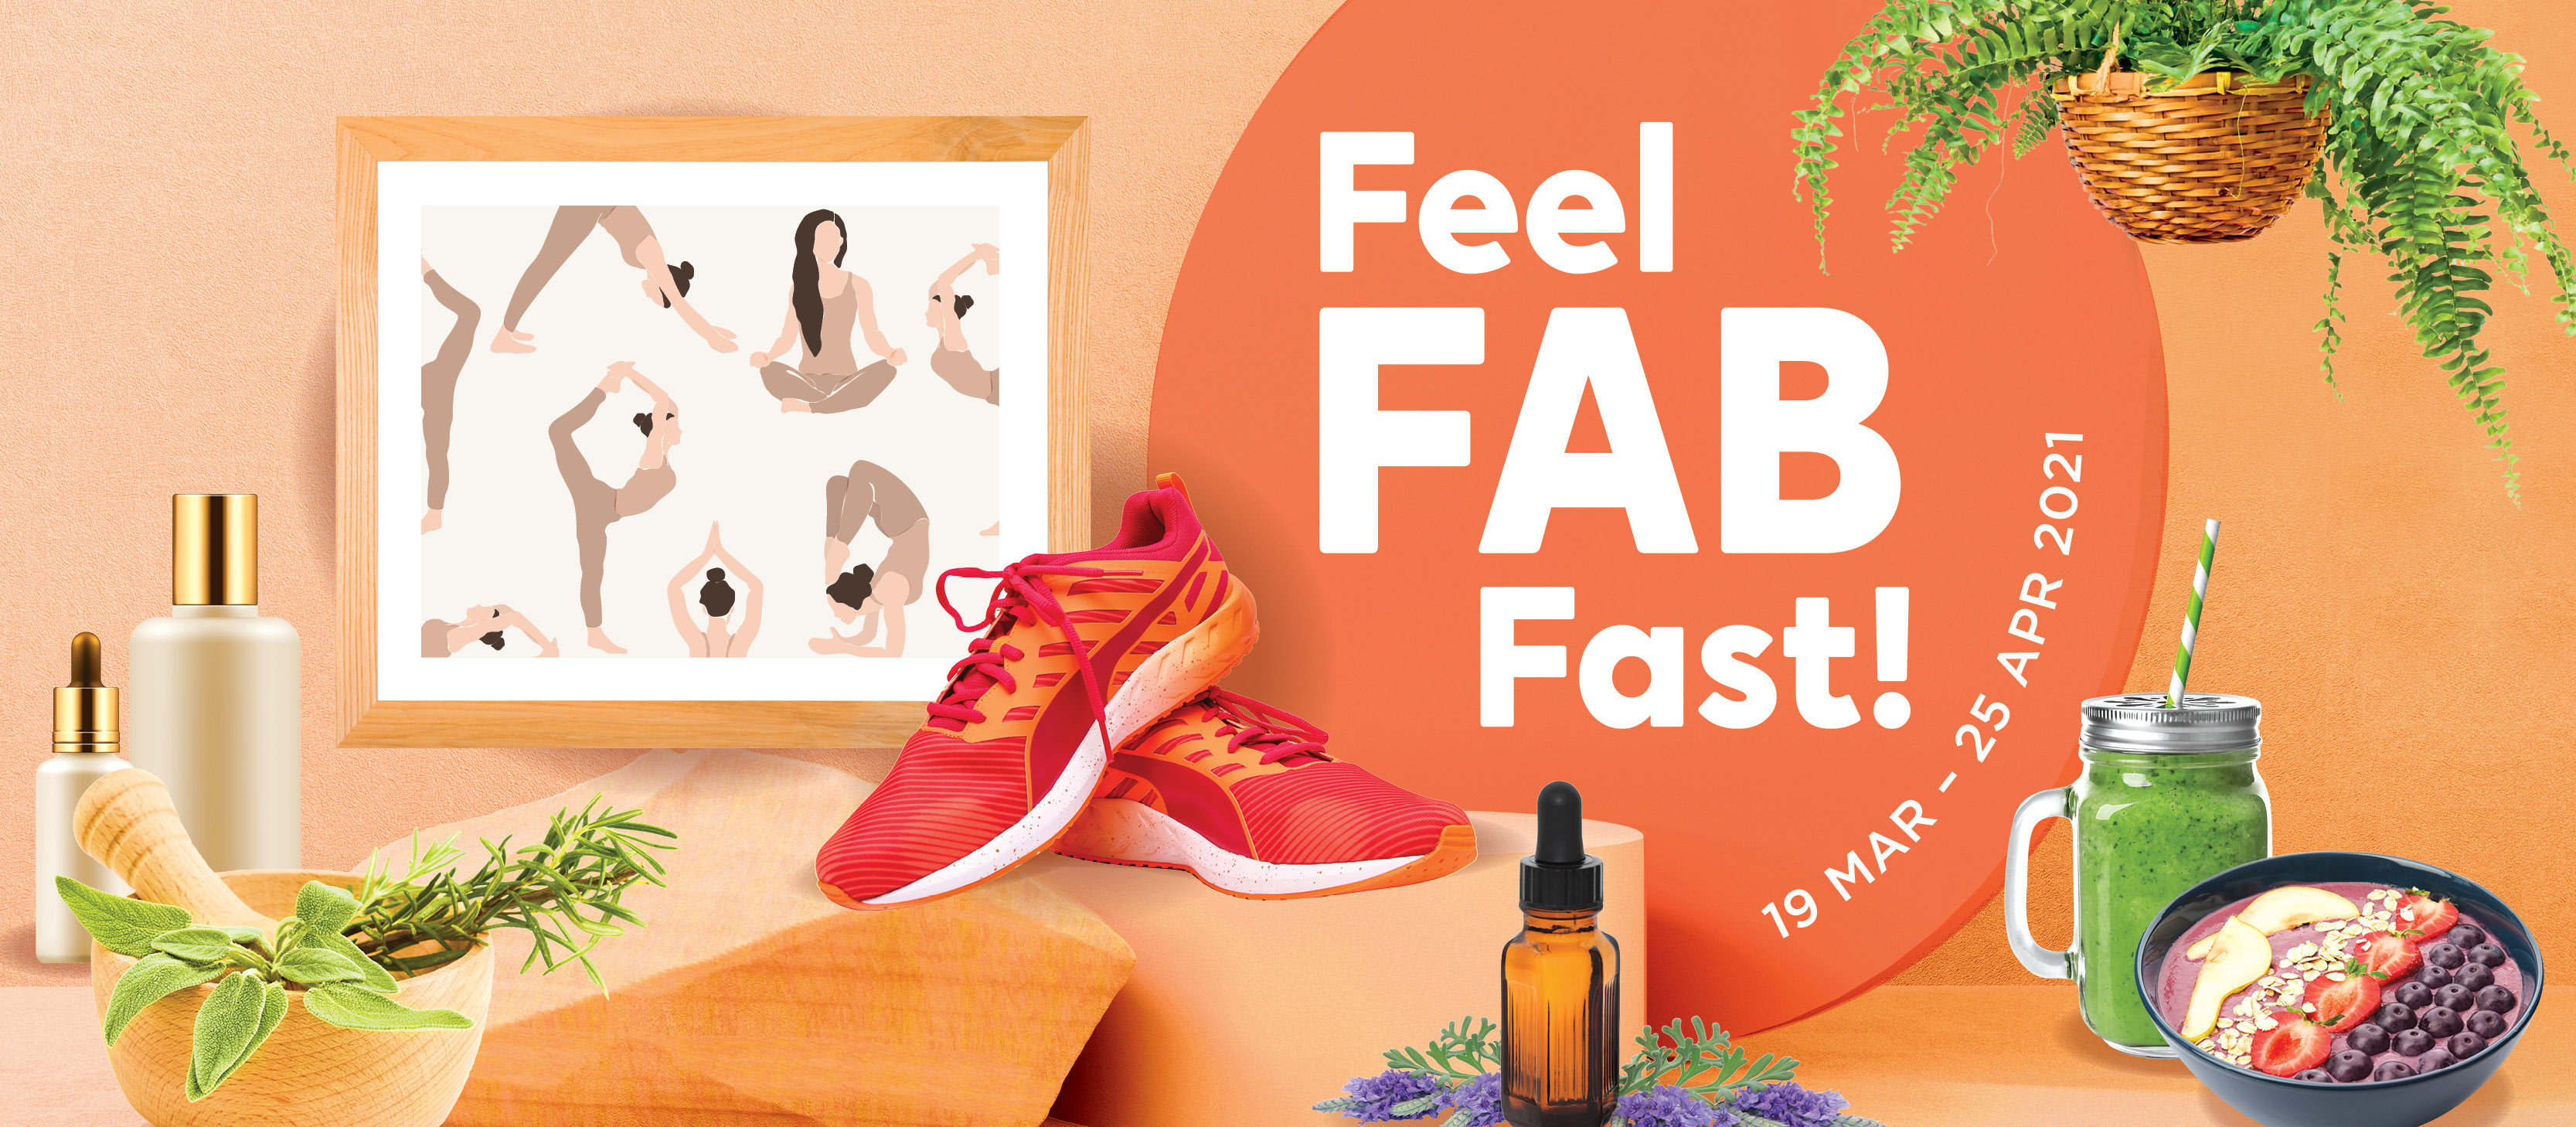 Feel FAB Fast at Northpoint City!